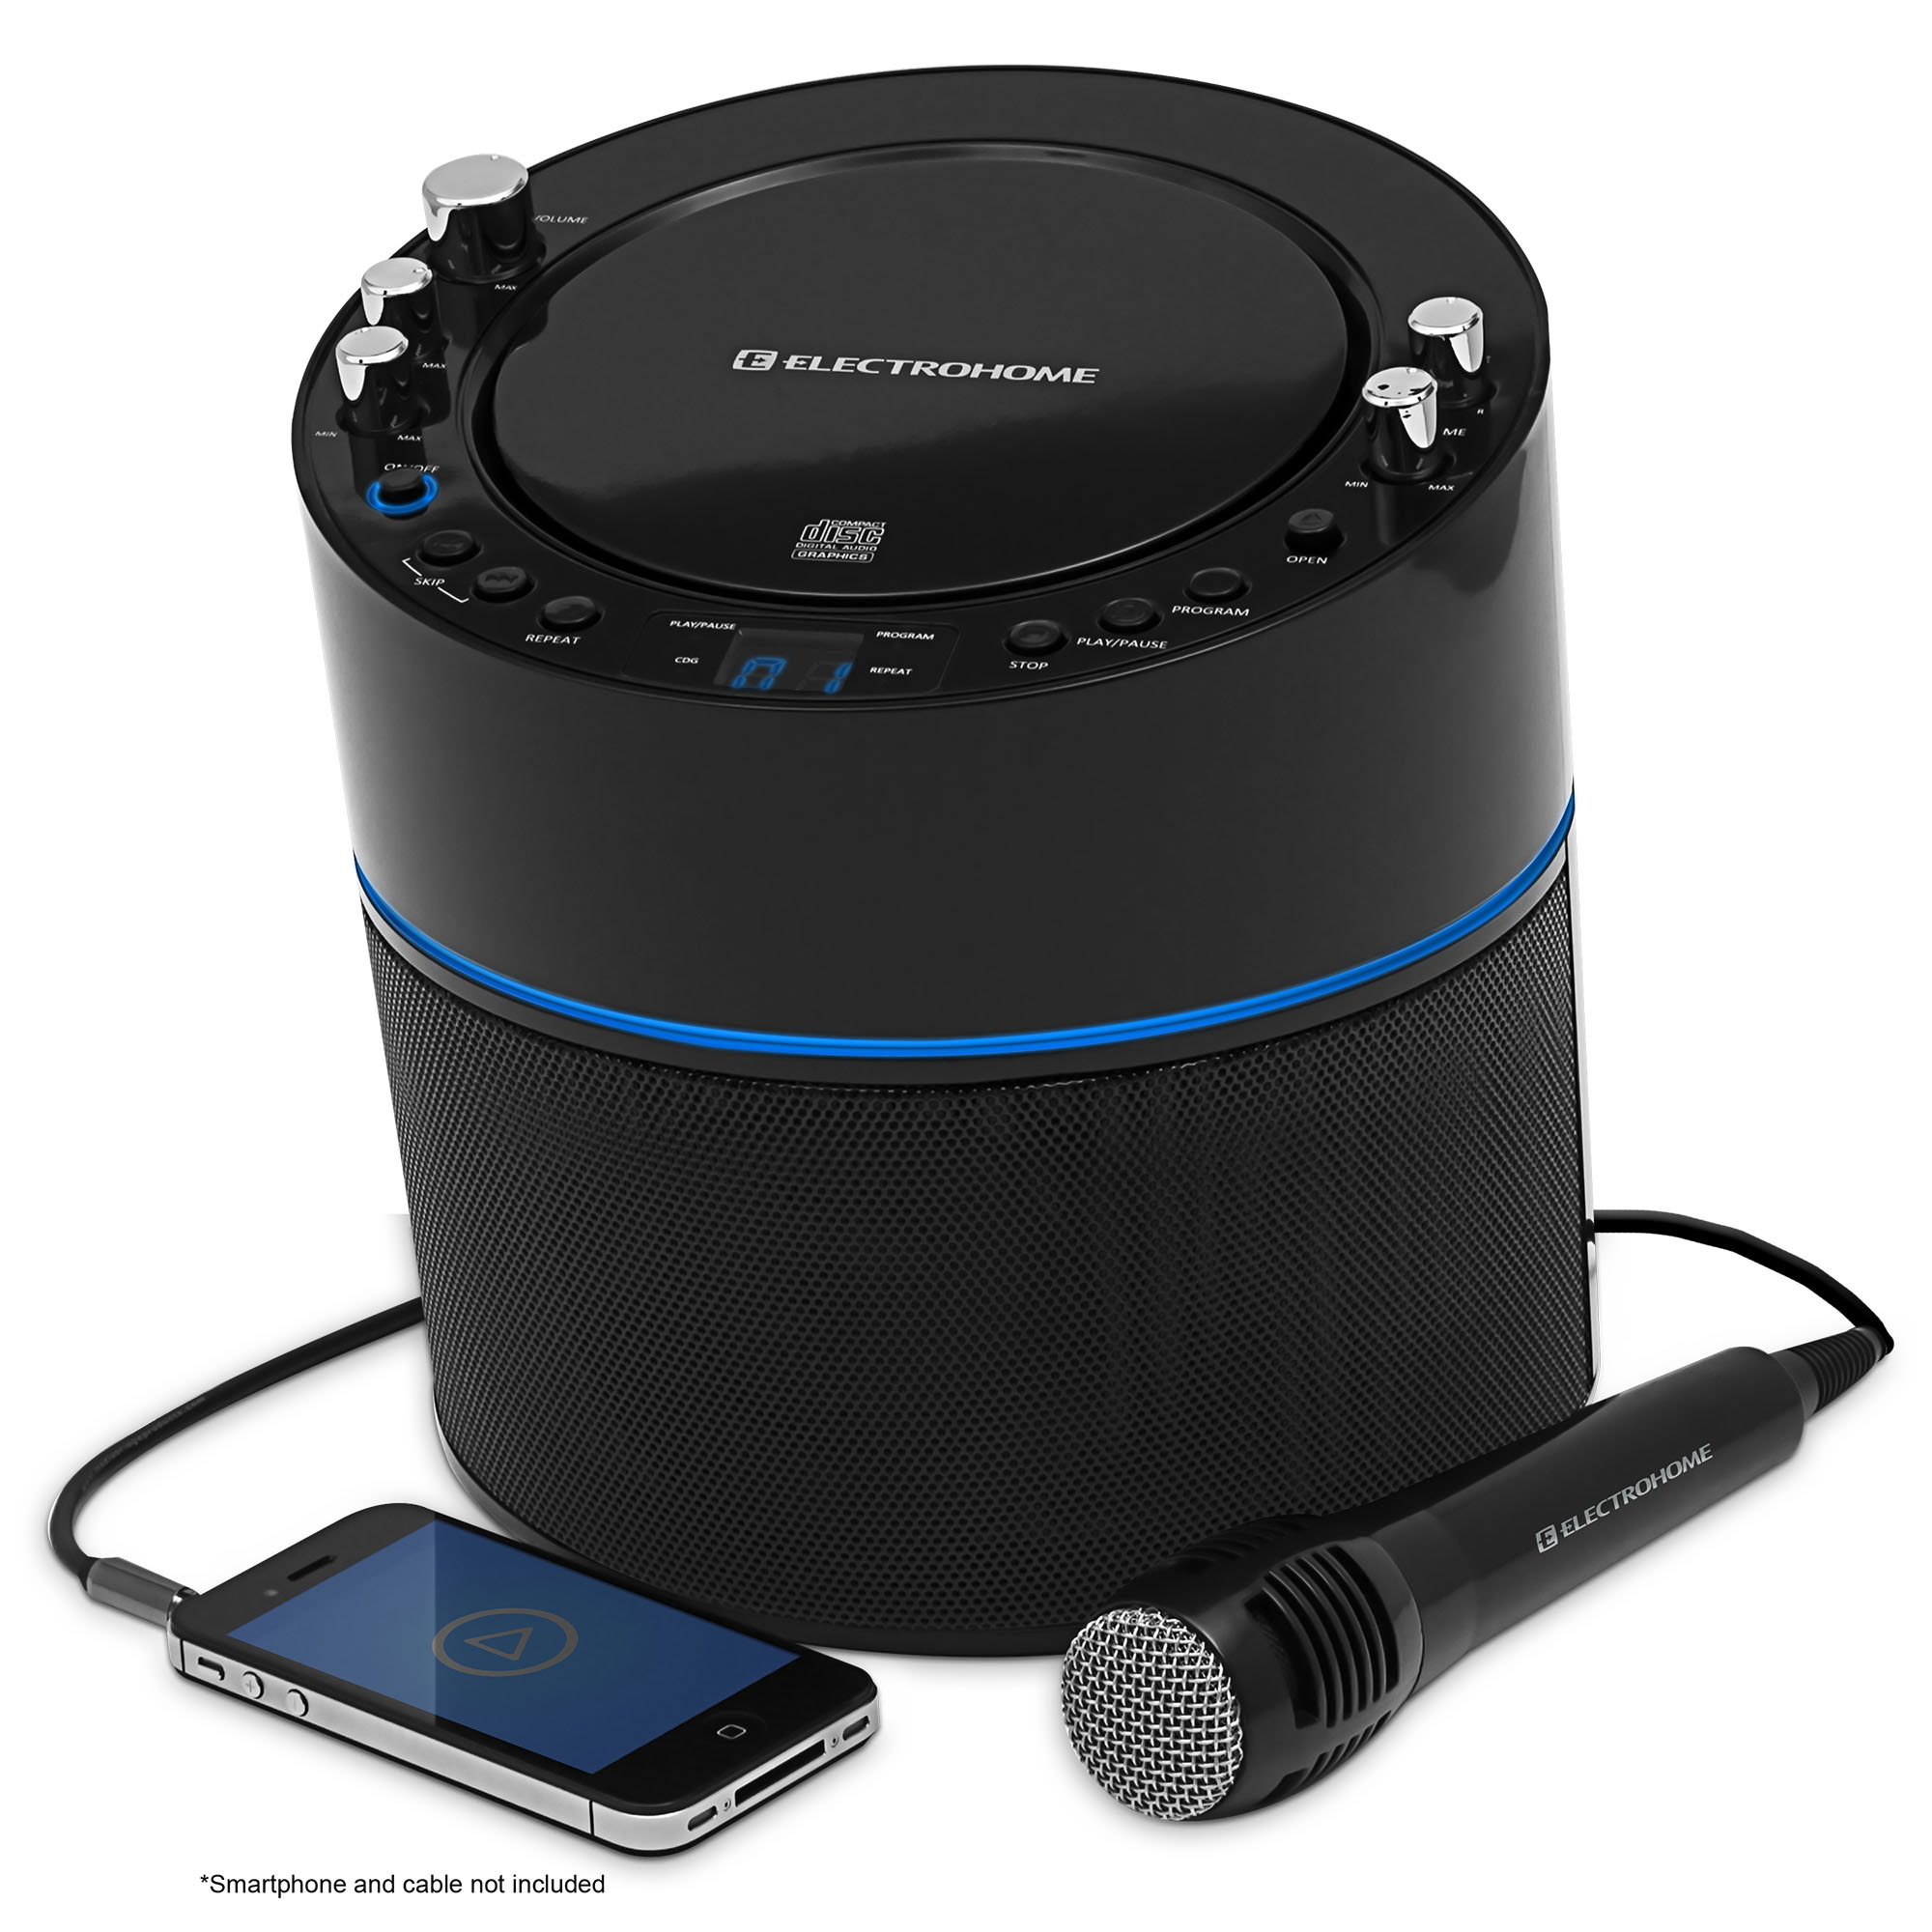 Electrohome Karaoke Machine Speaker System CD+G Player with 2 Microphone Connections,... by ElectroHome